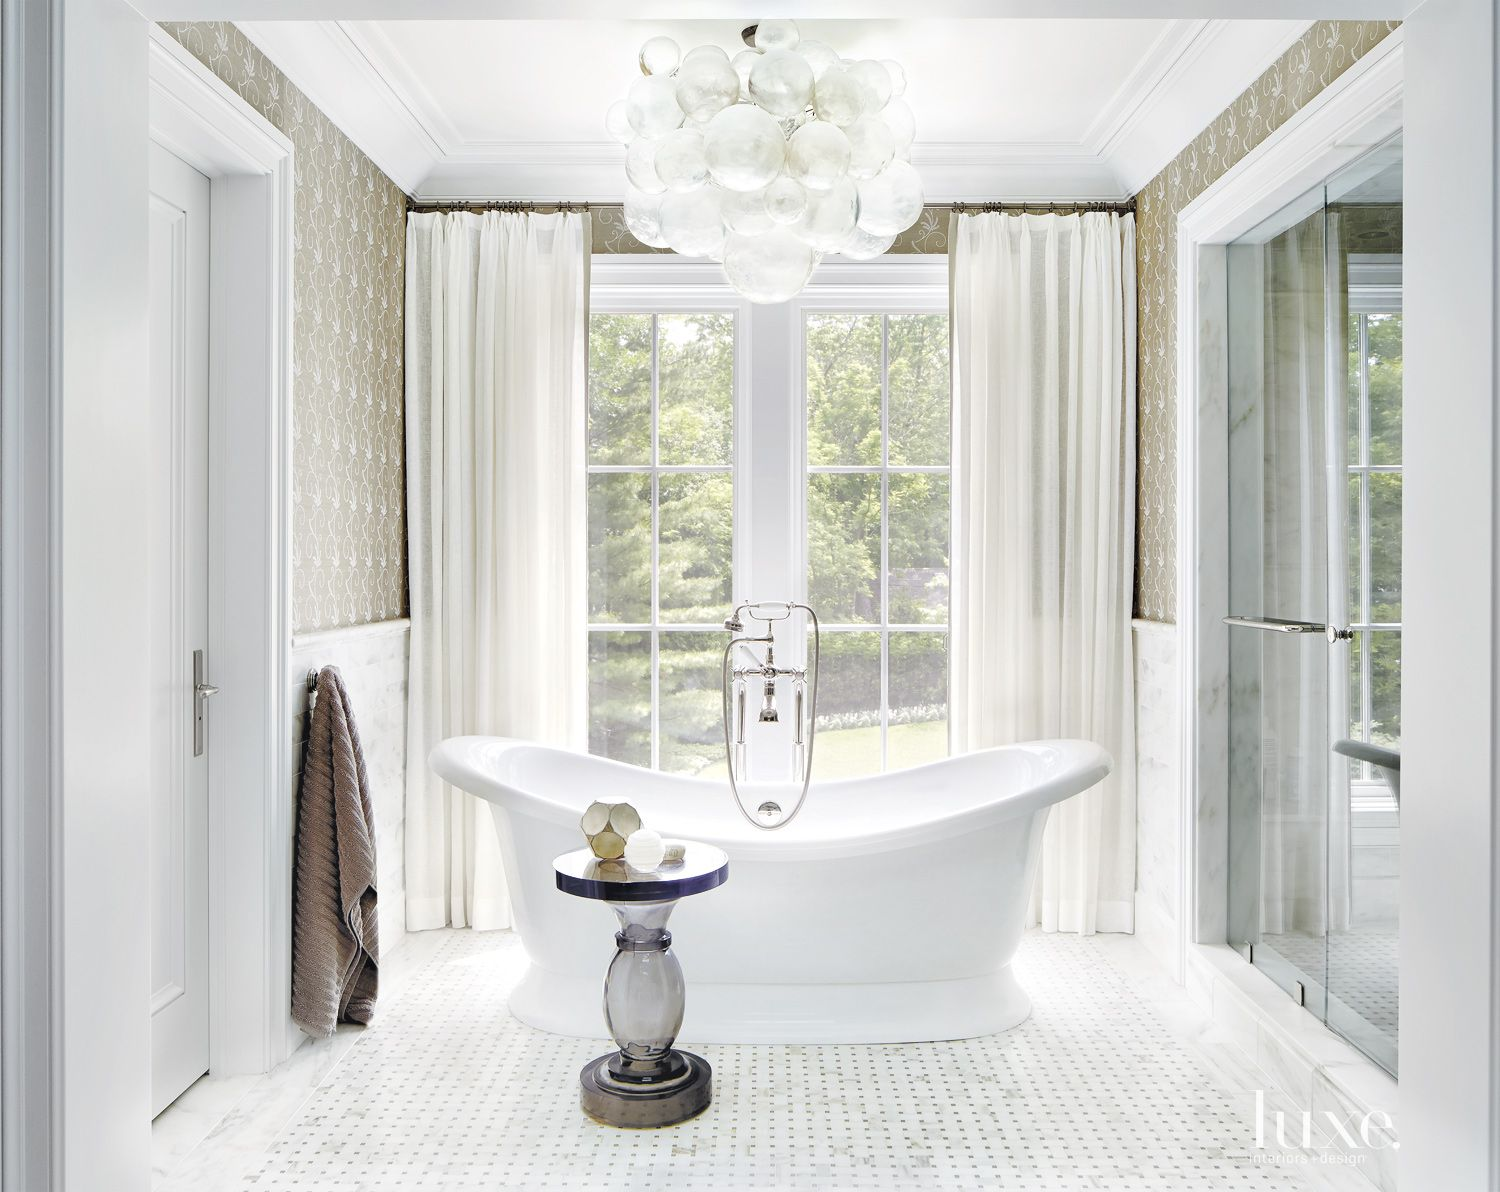 Contemporary White Bathroom with Elegant Freestanding Tub